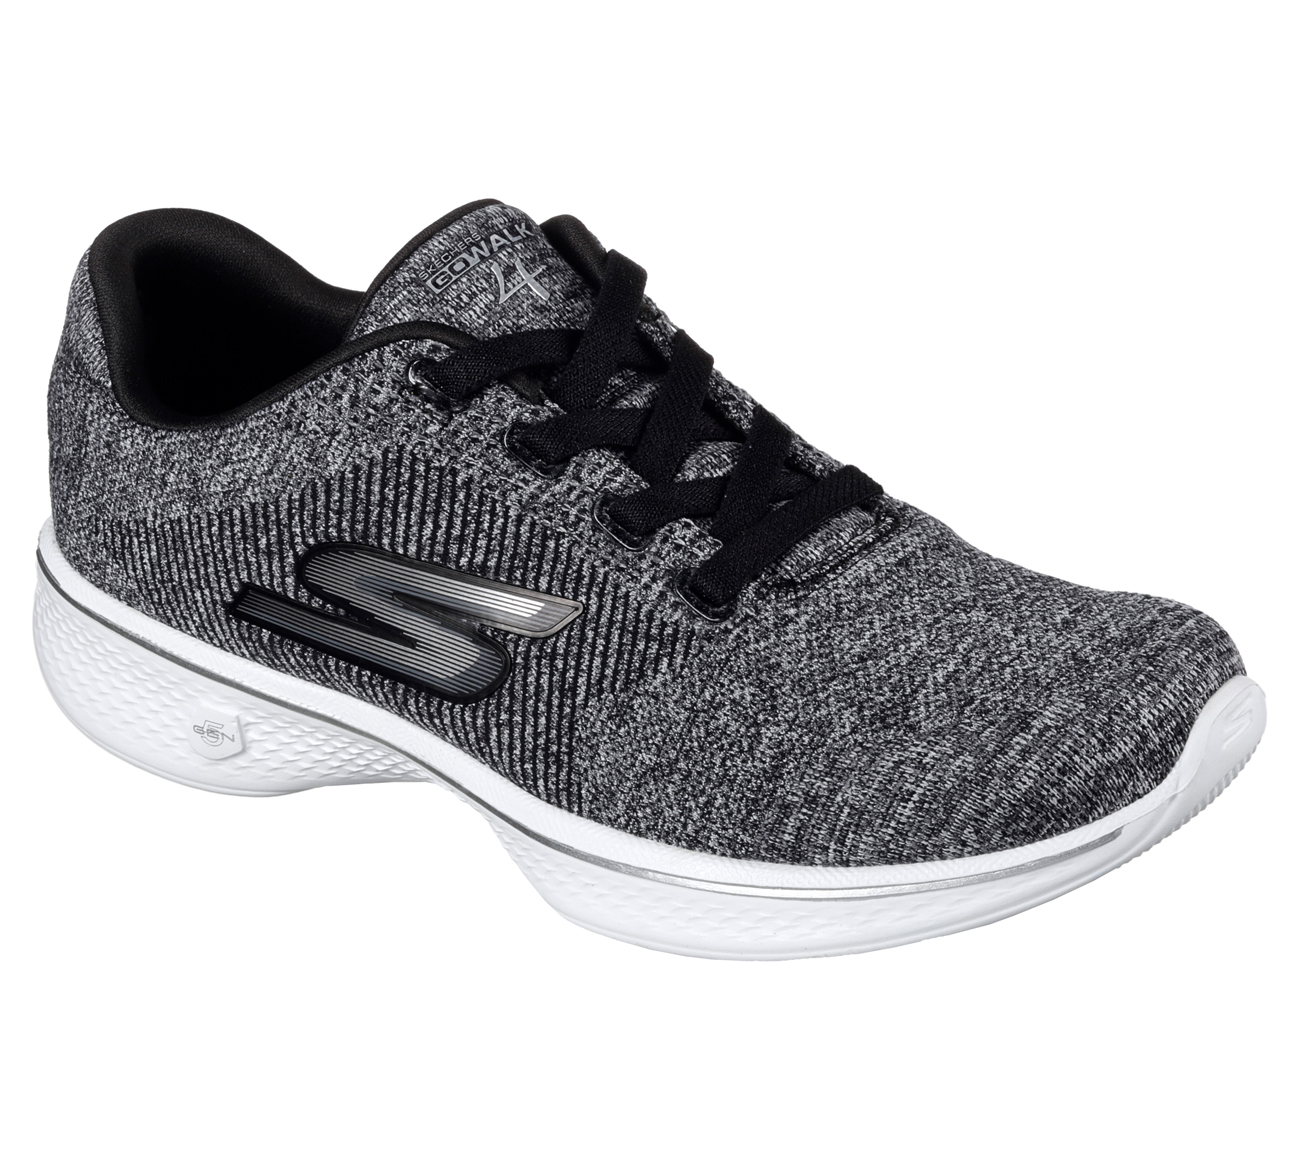 Sketchers Men S Wide Witdth Walking Shoe